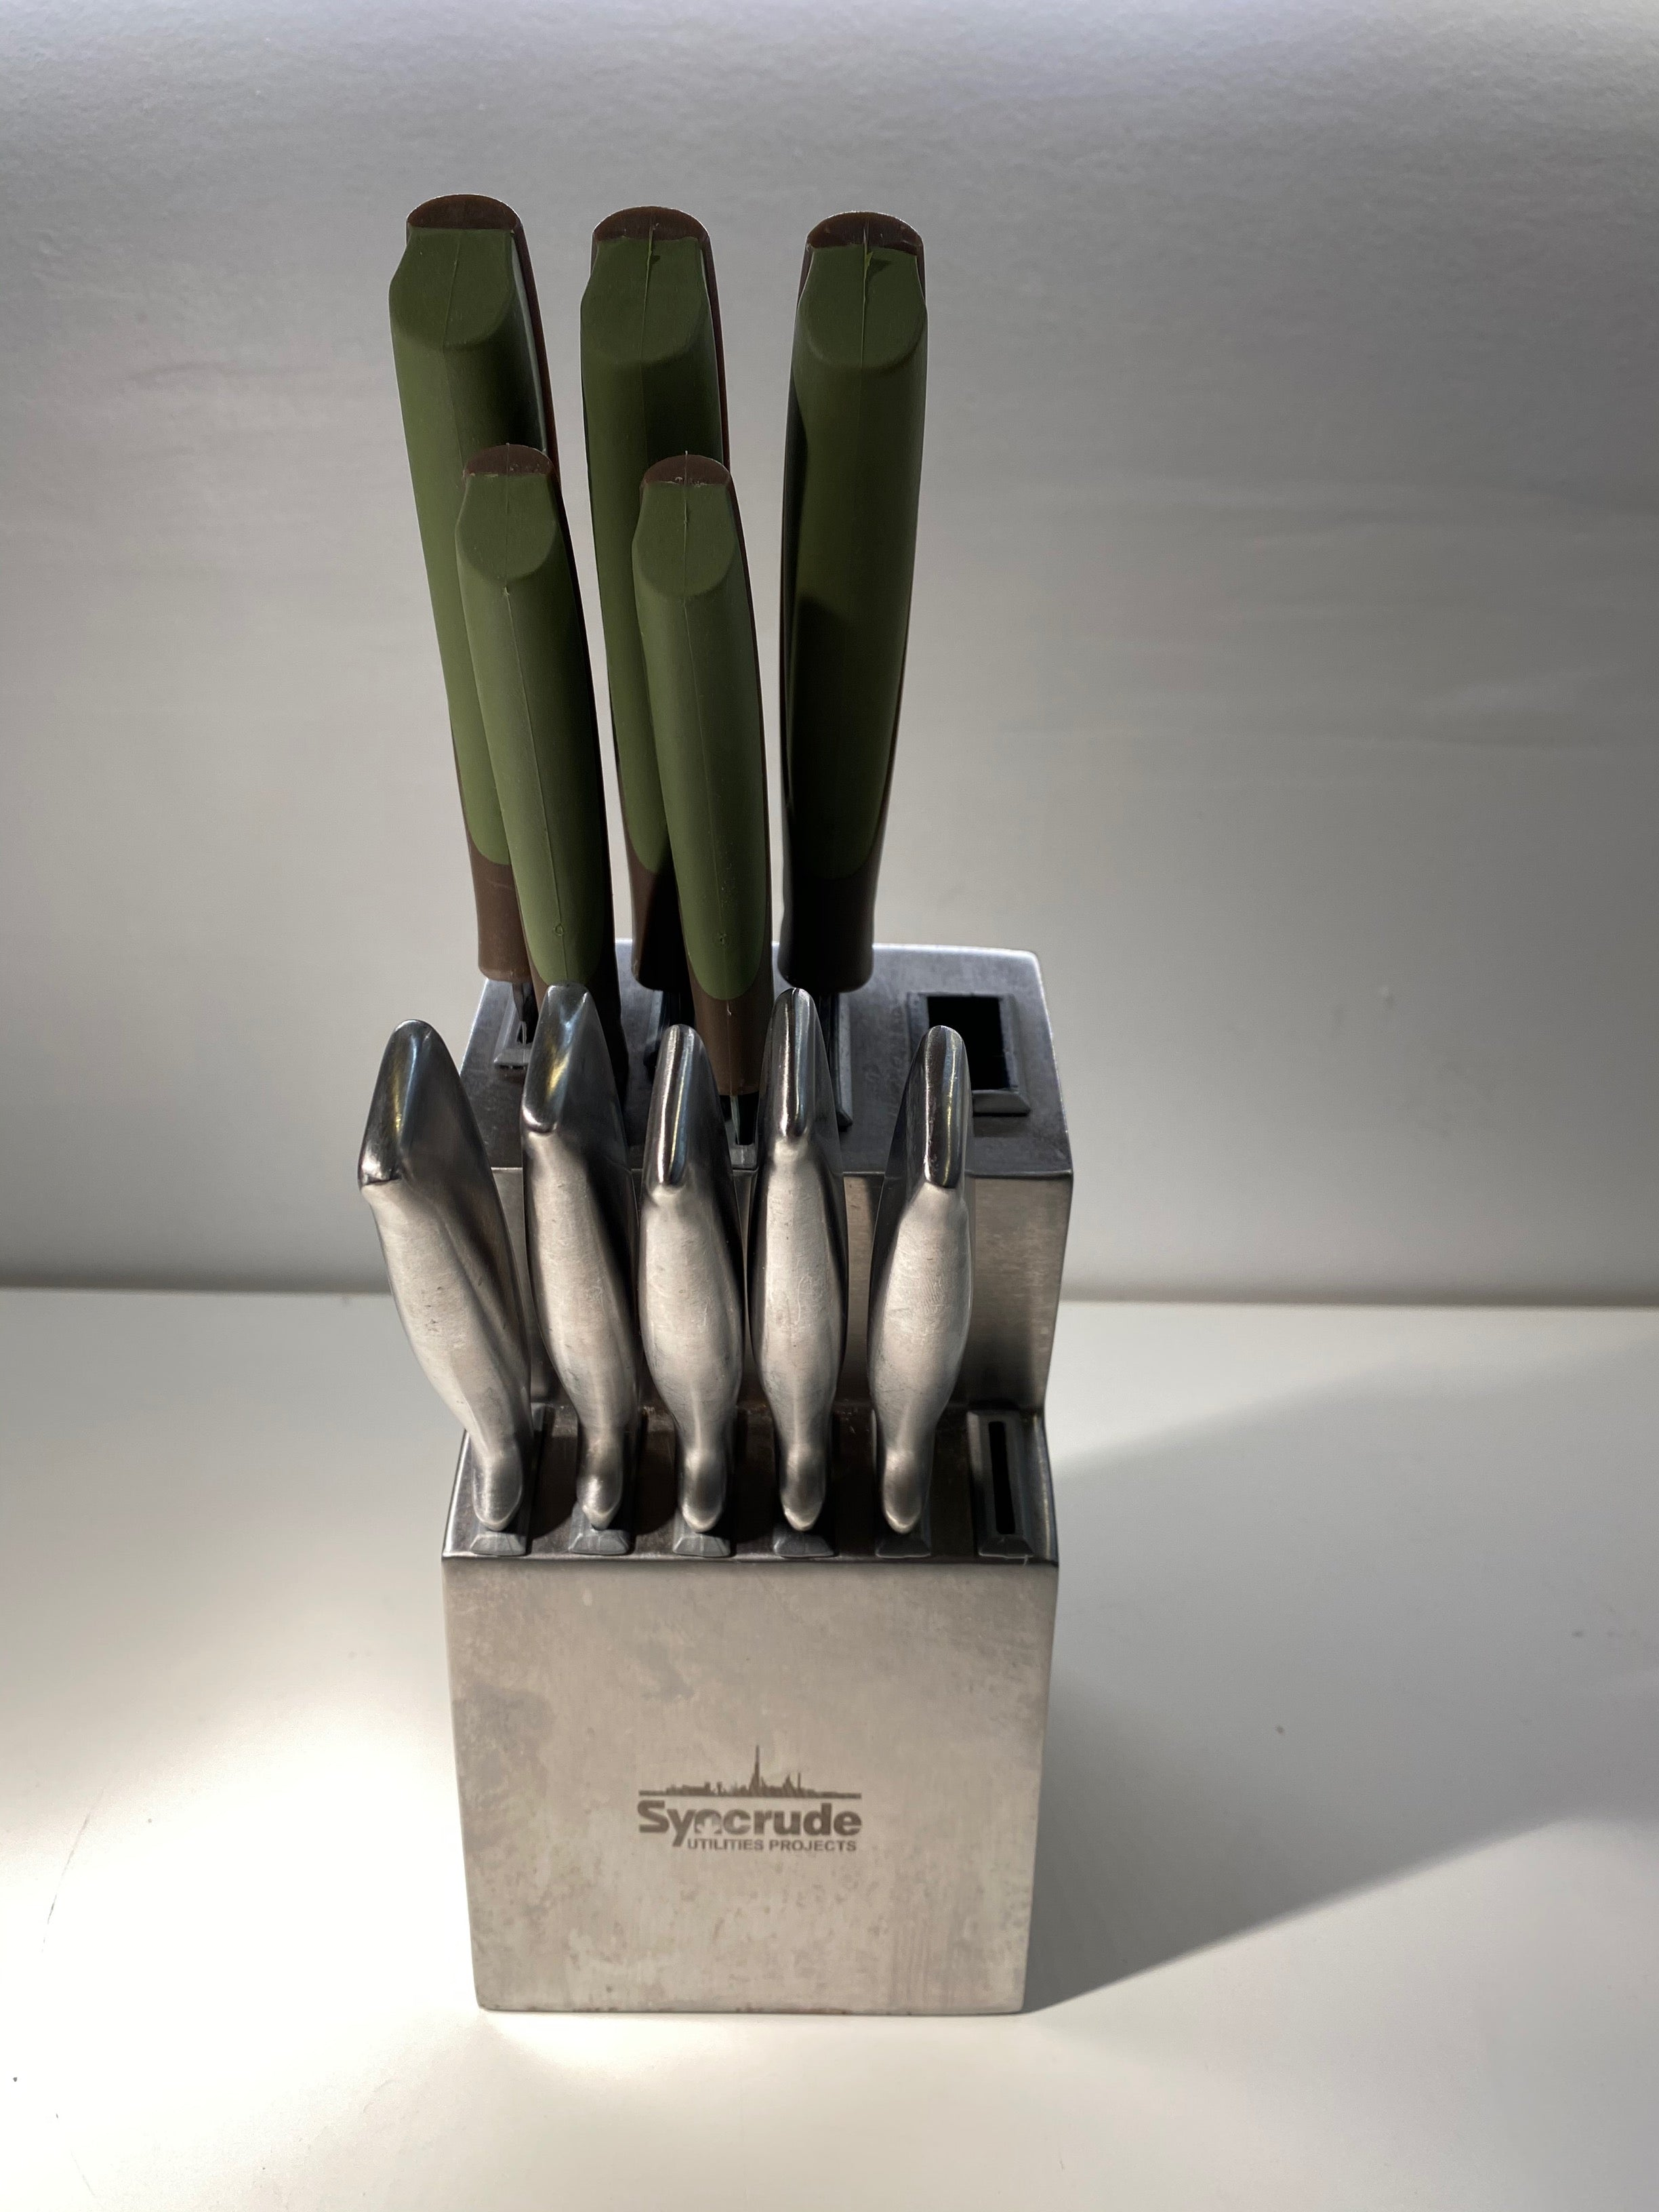 Syncrude Knife Set